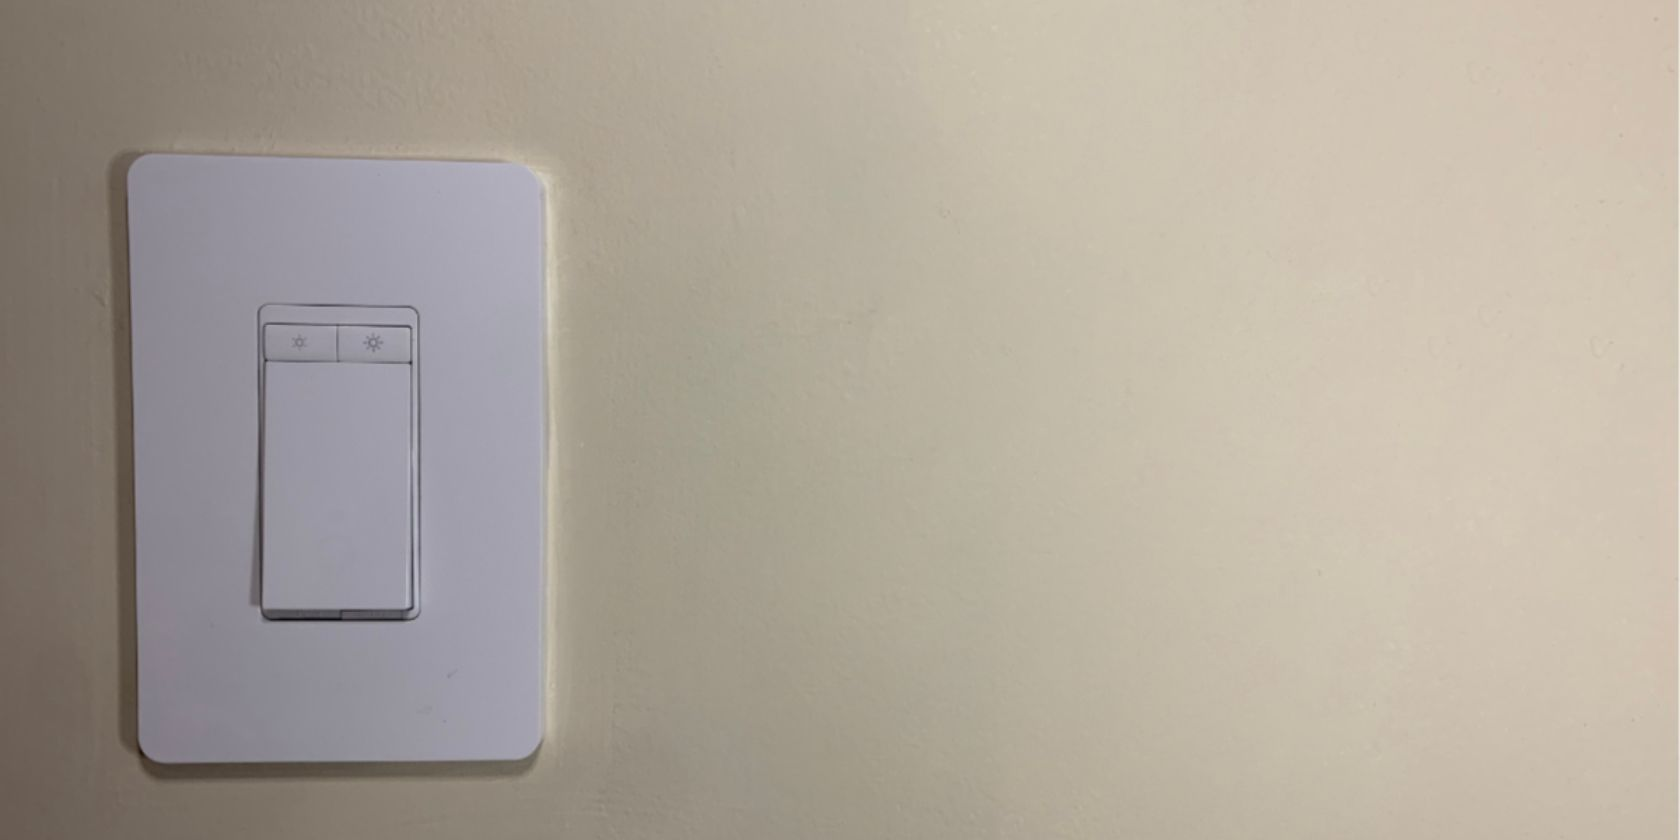 How to Install a Hardwired Smart Light Switch